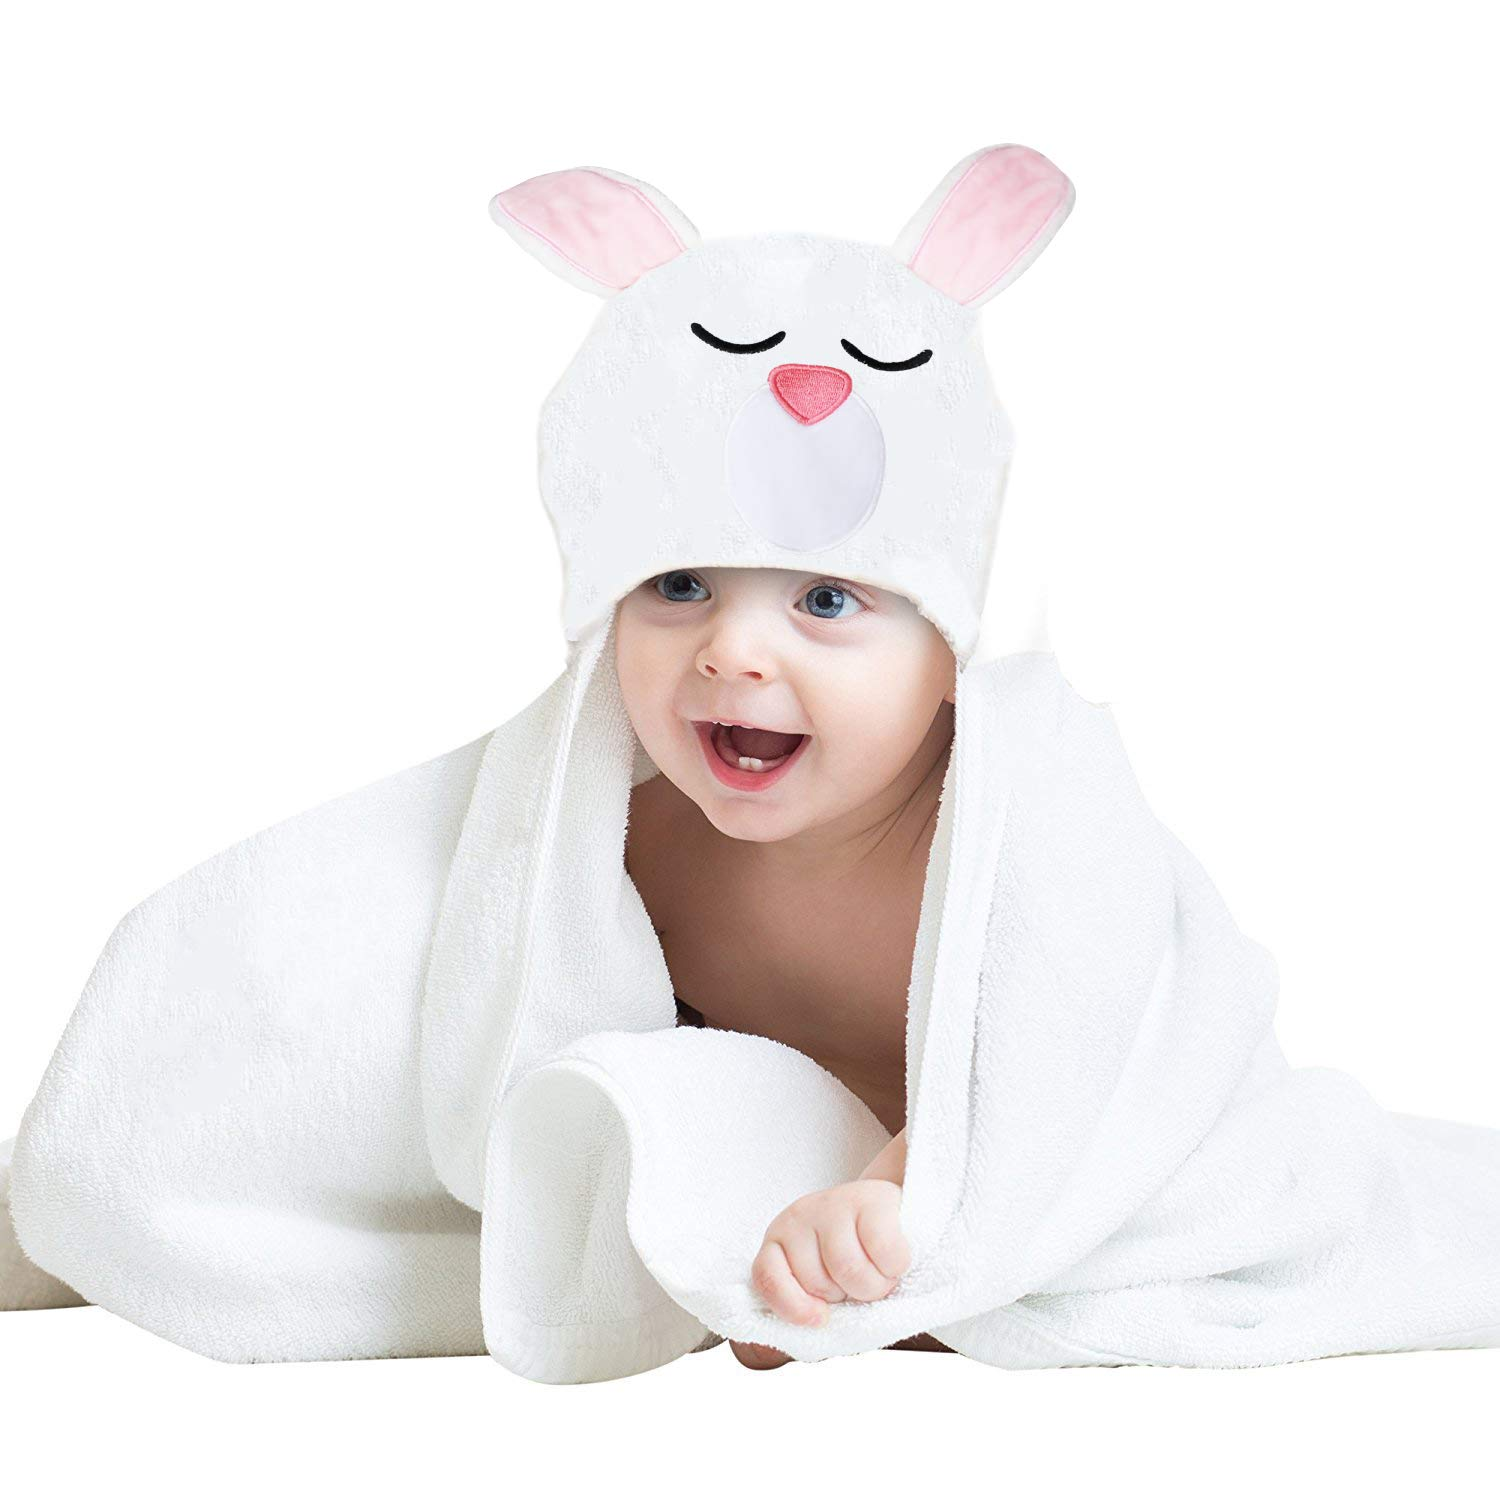 Hooded Bath Towel and Rubber Ducky Set, Newborn Baby To Toddlers, Super Size by NATAGO